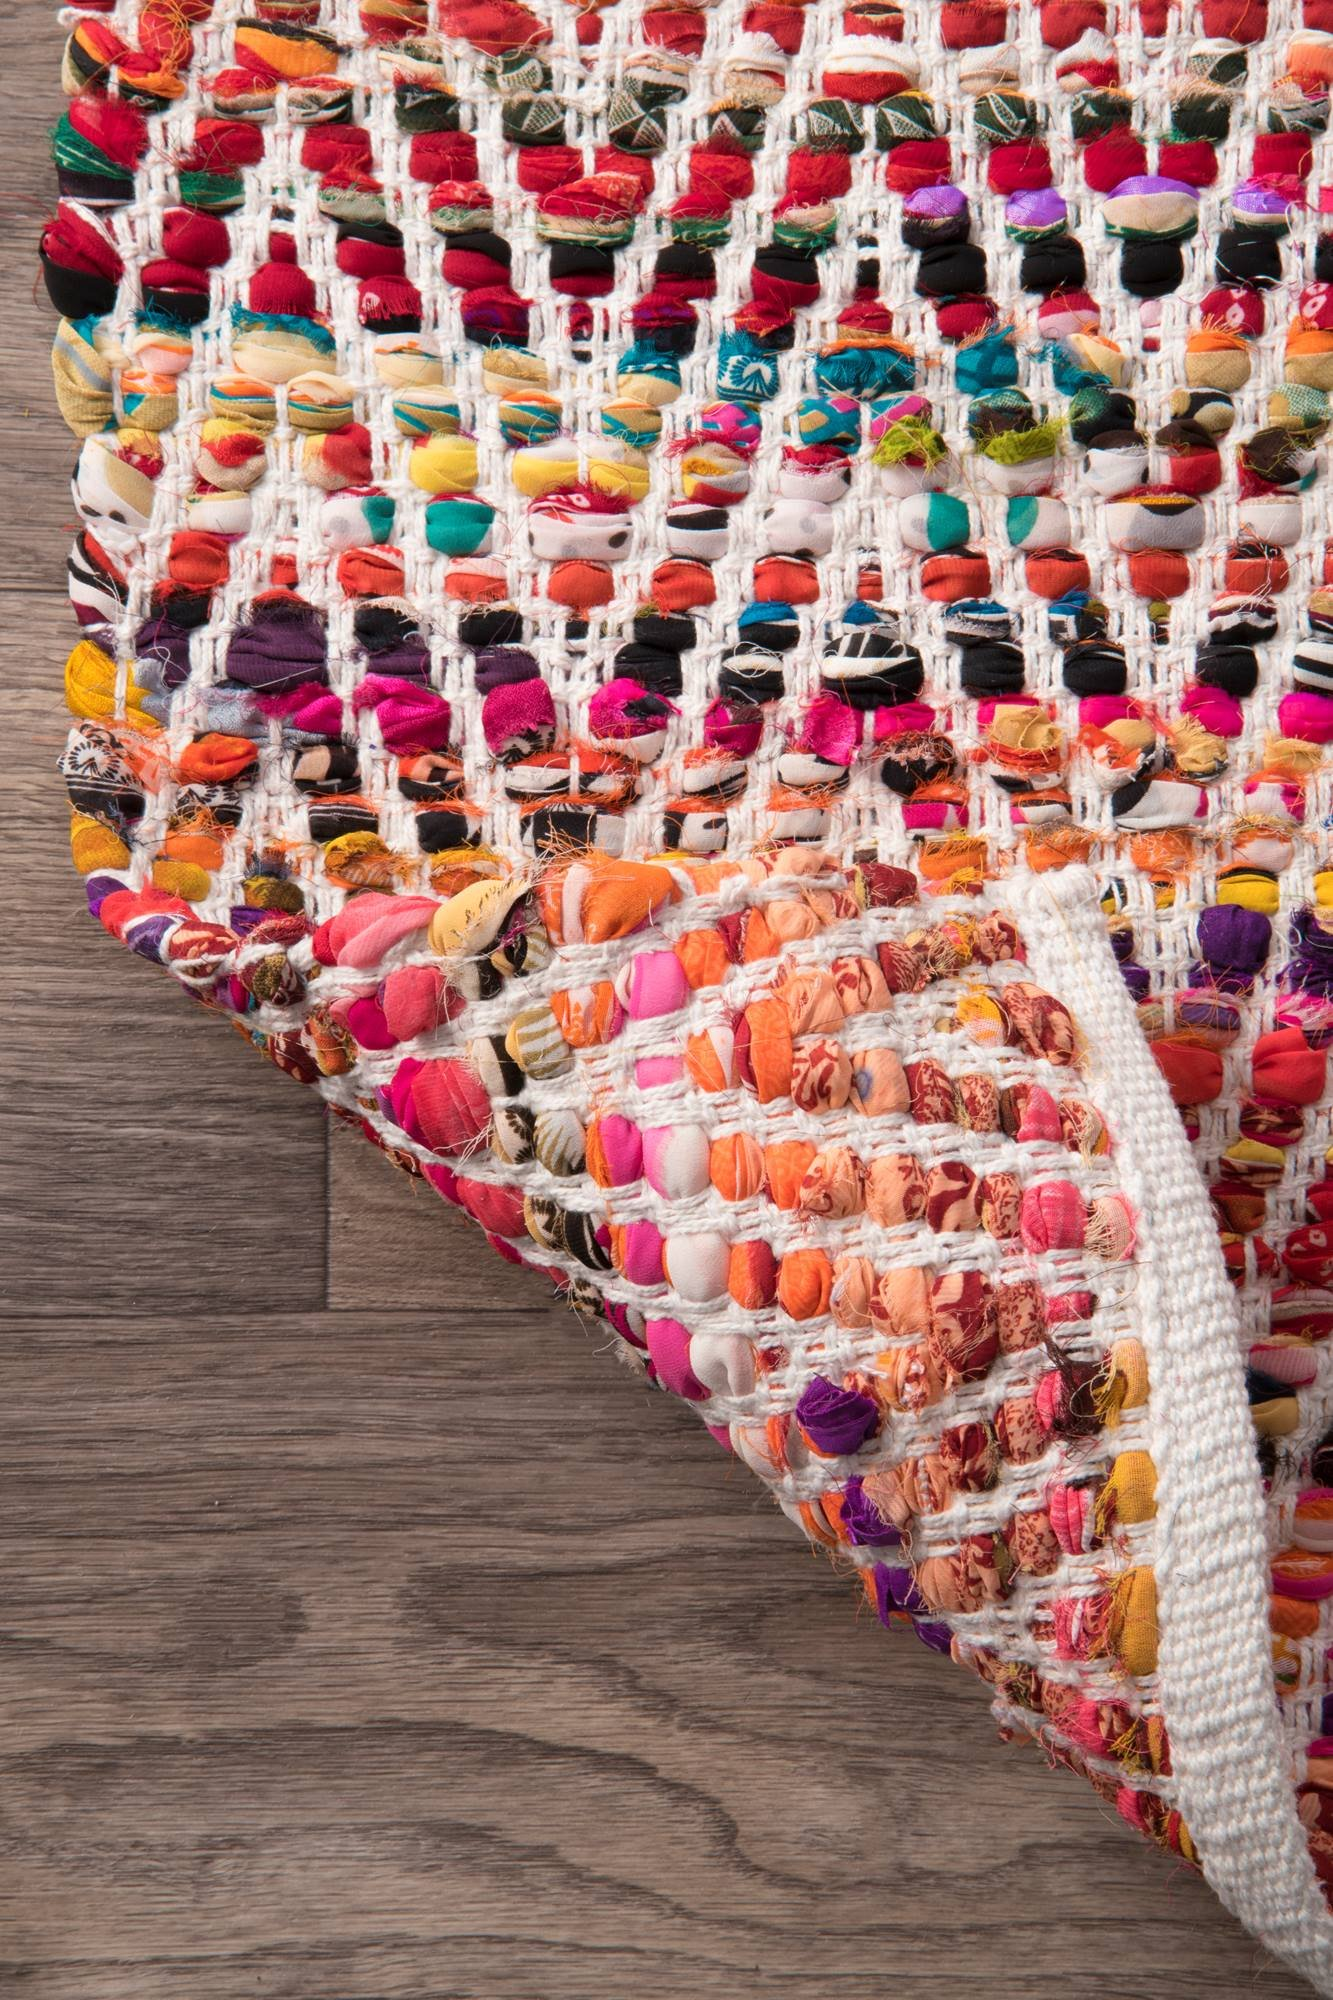 nuLOOM Hand Woven Candy Striped Chevron Area Rugs, 2' x 3', Magenta by nuLOOM (Image #4)